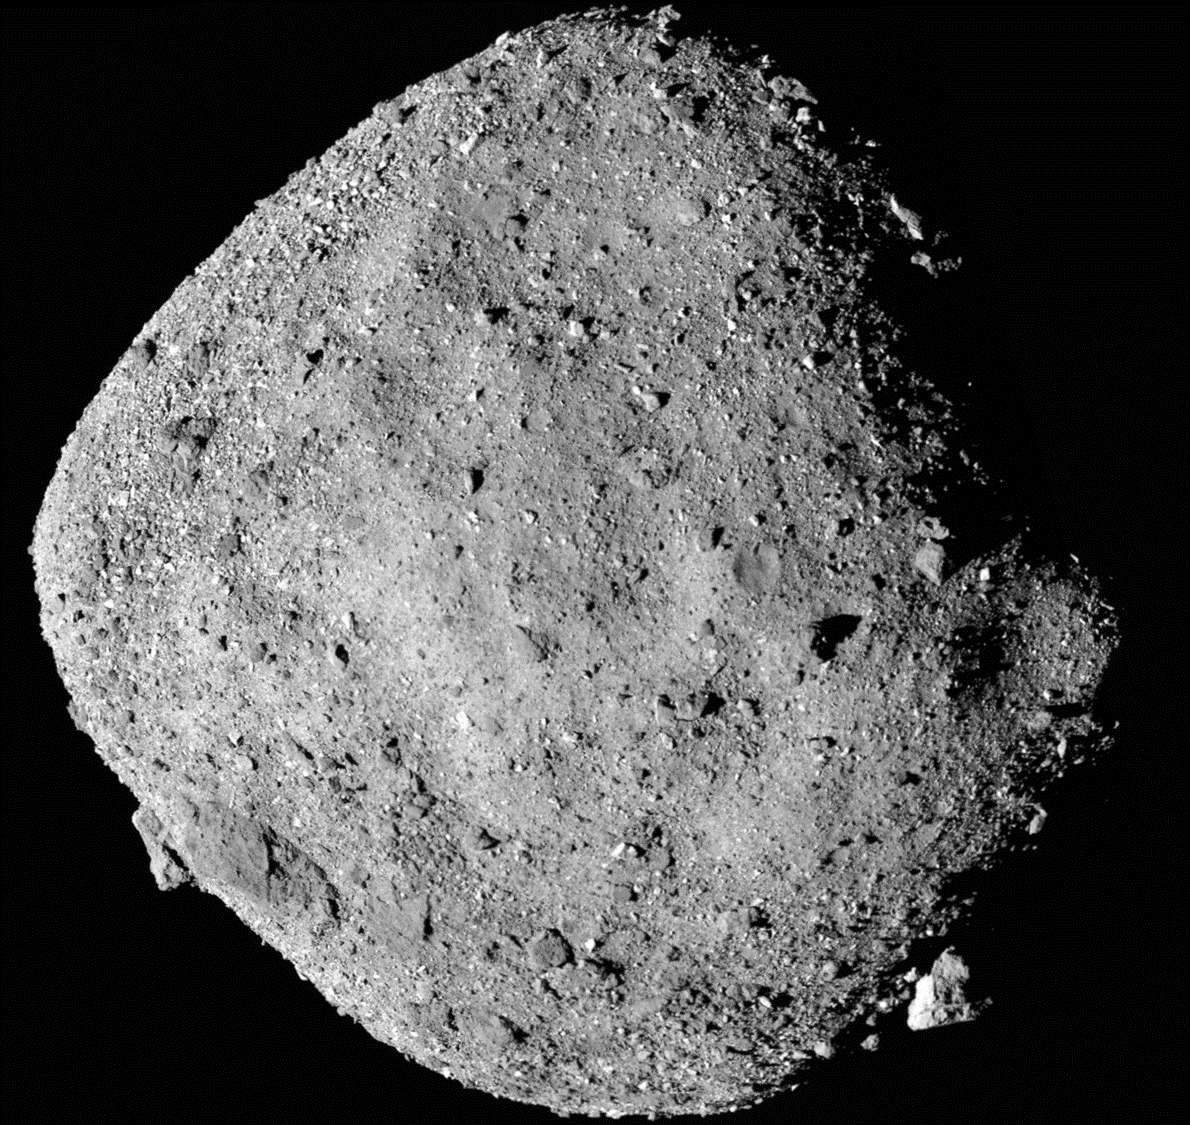 NASA's about to scoop up some asteroid dirt on the space rock Bennu. Scientists are thrilled.